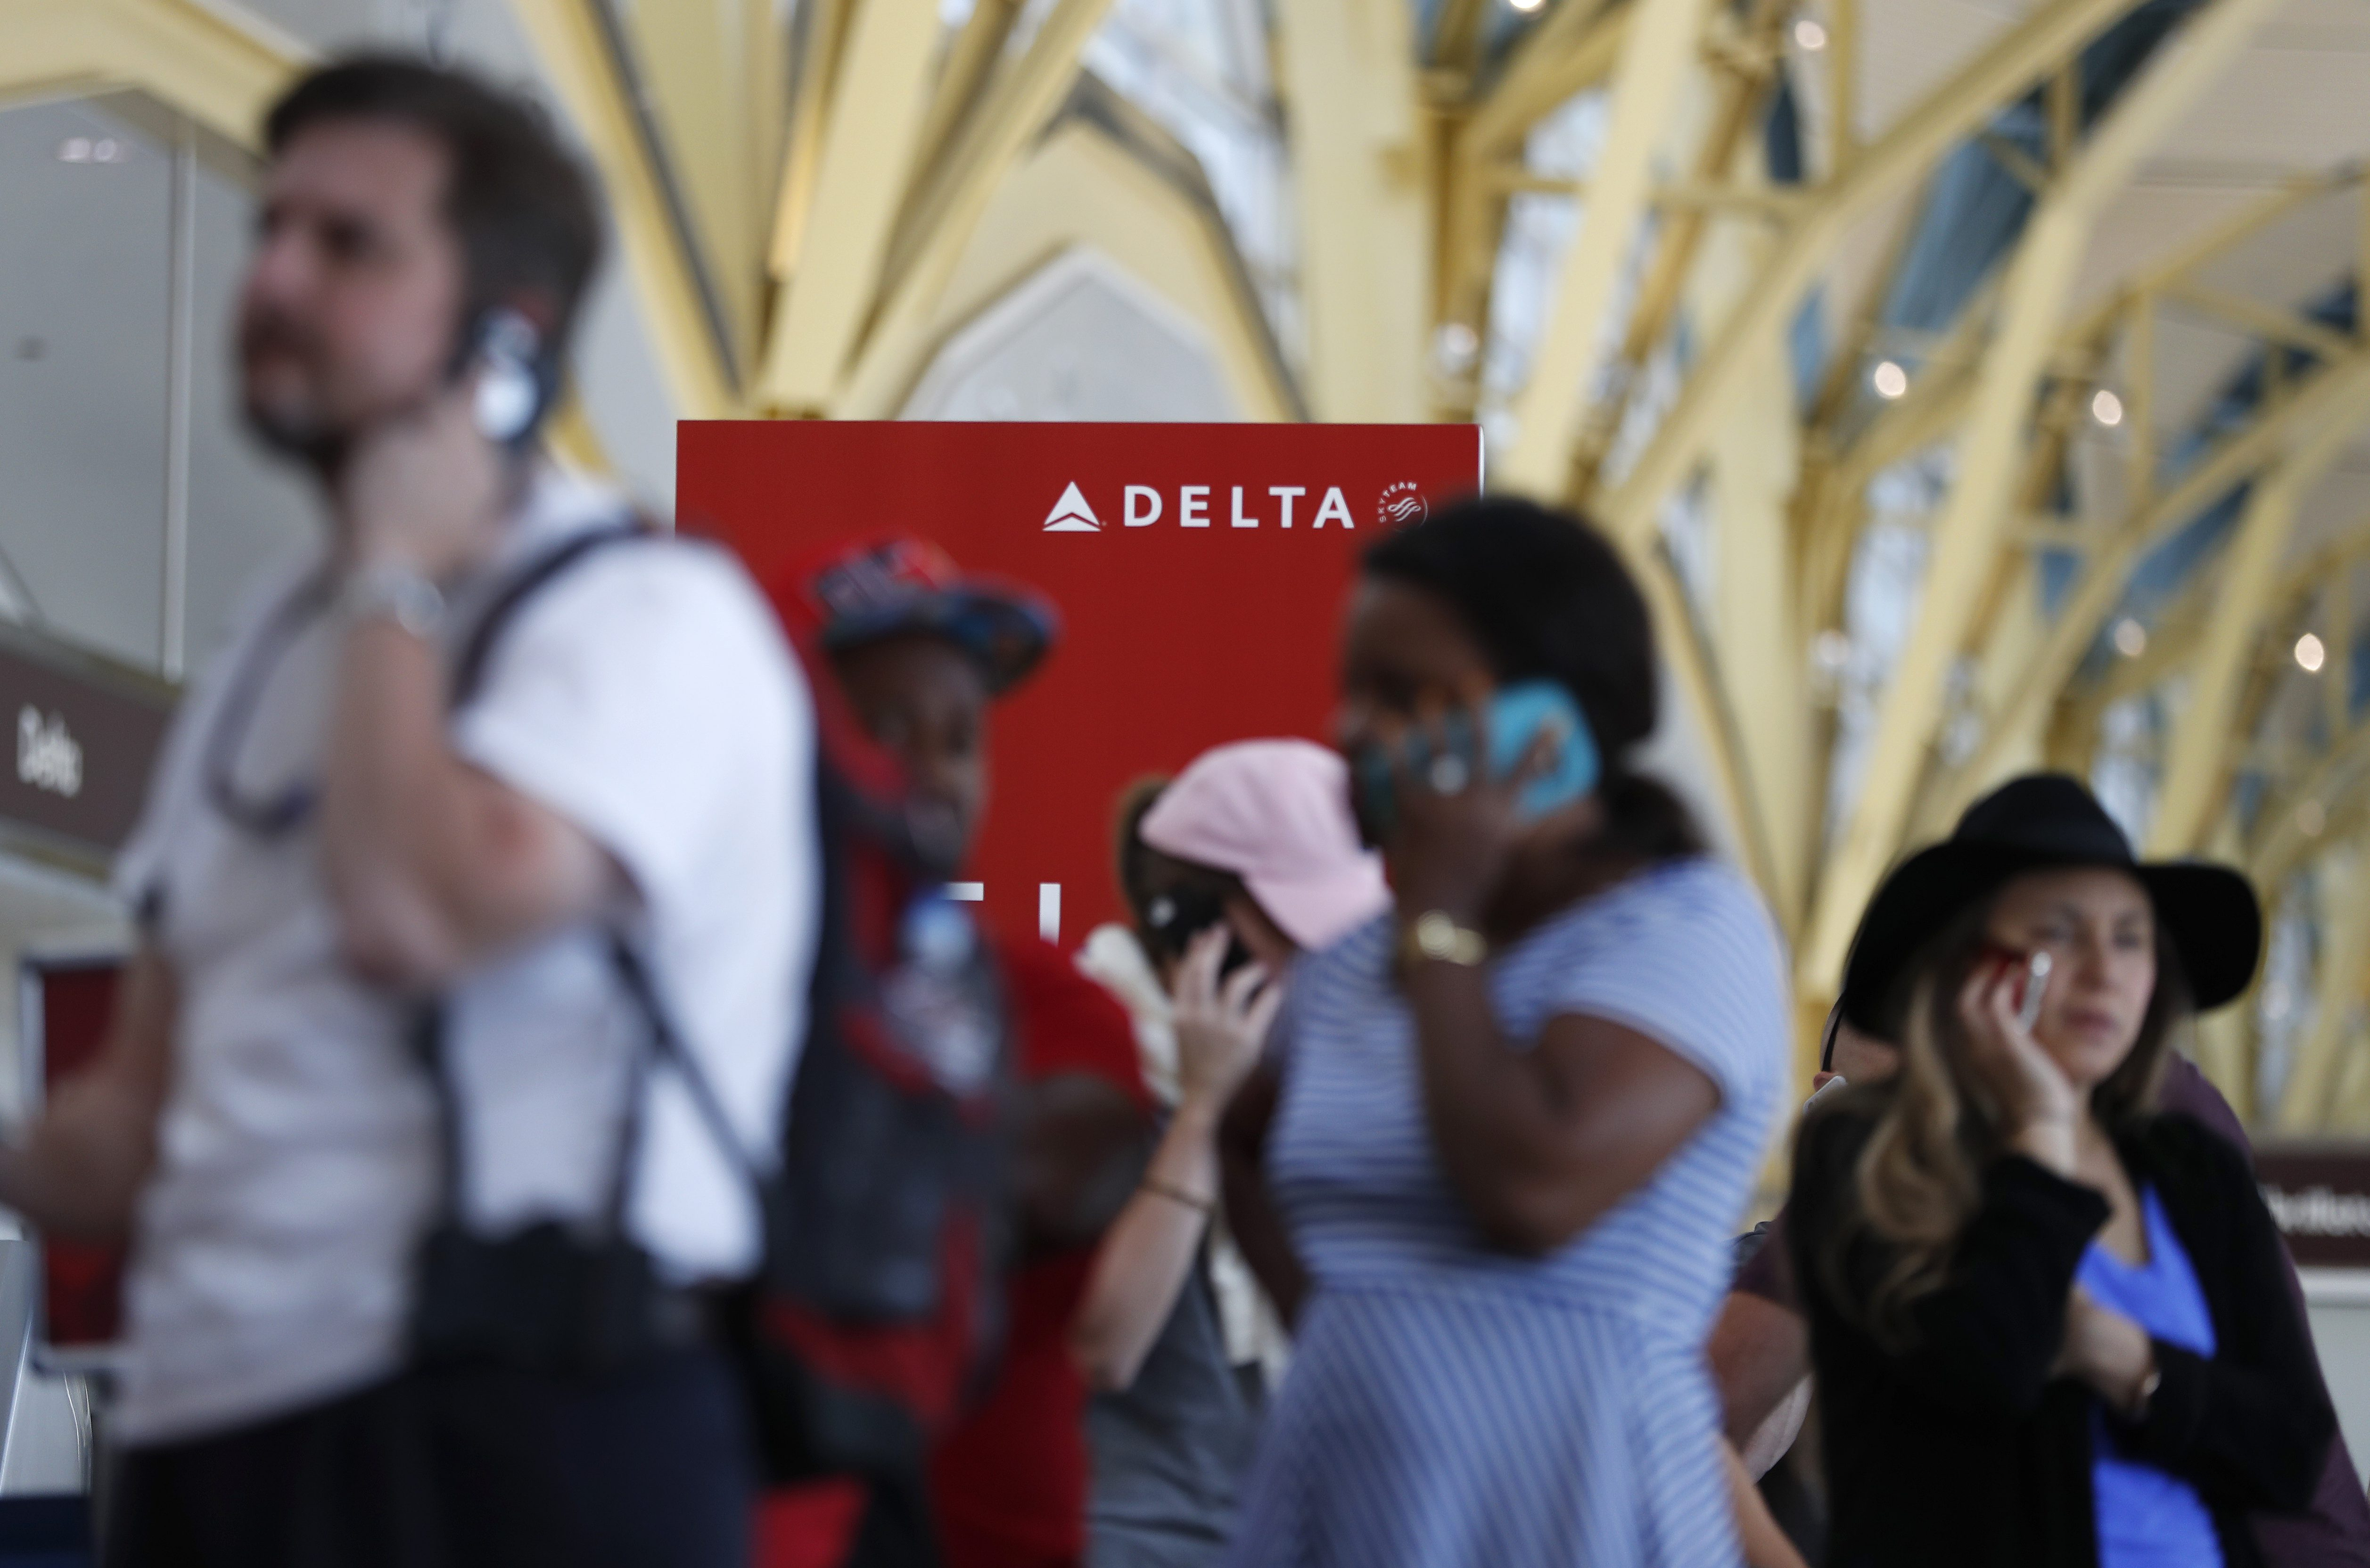 Delta passengers stranded by outage.